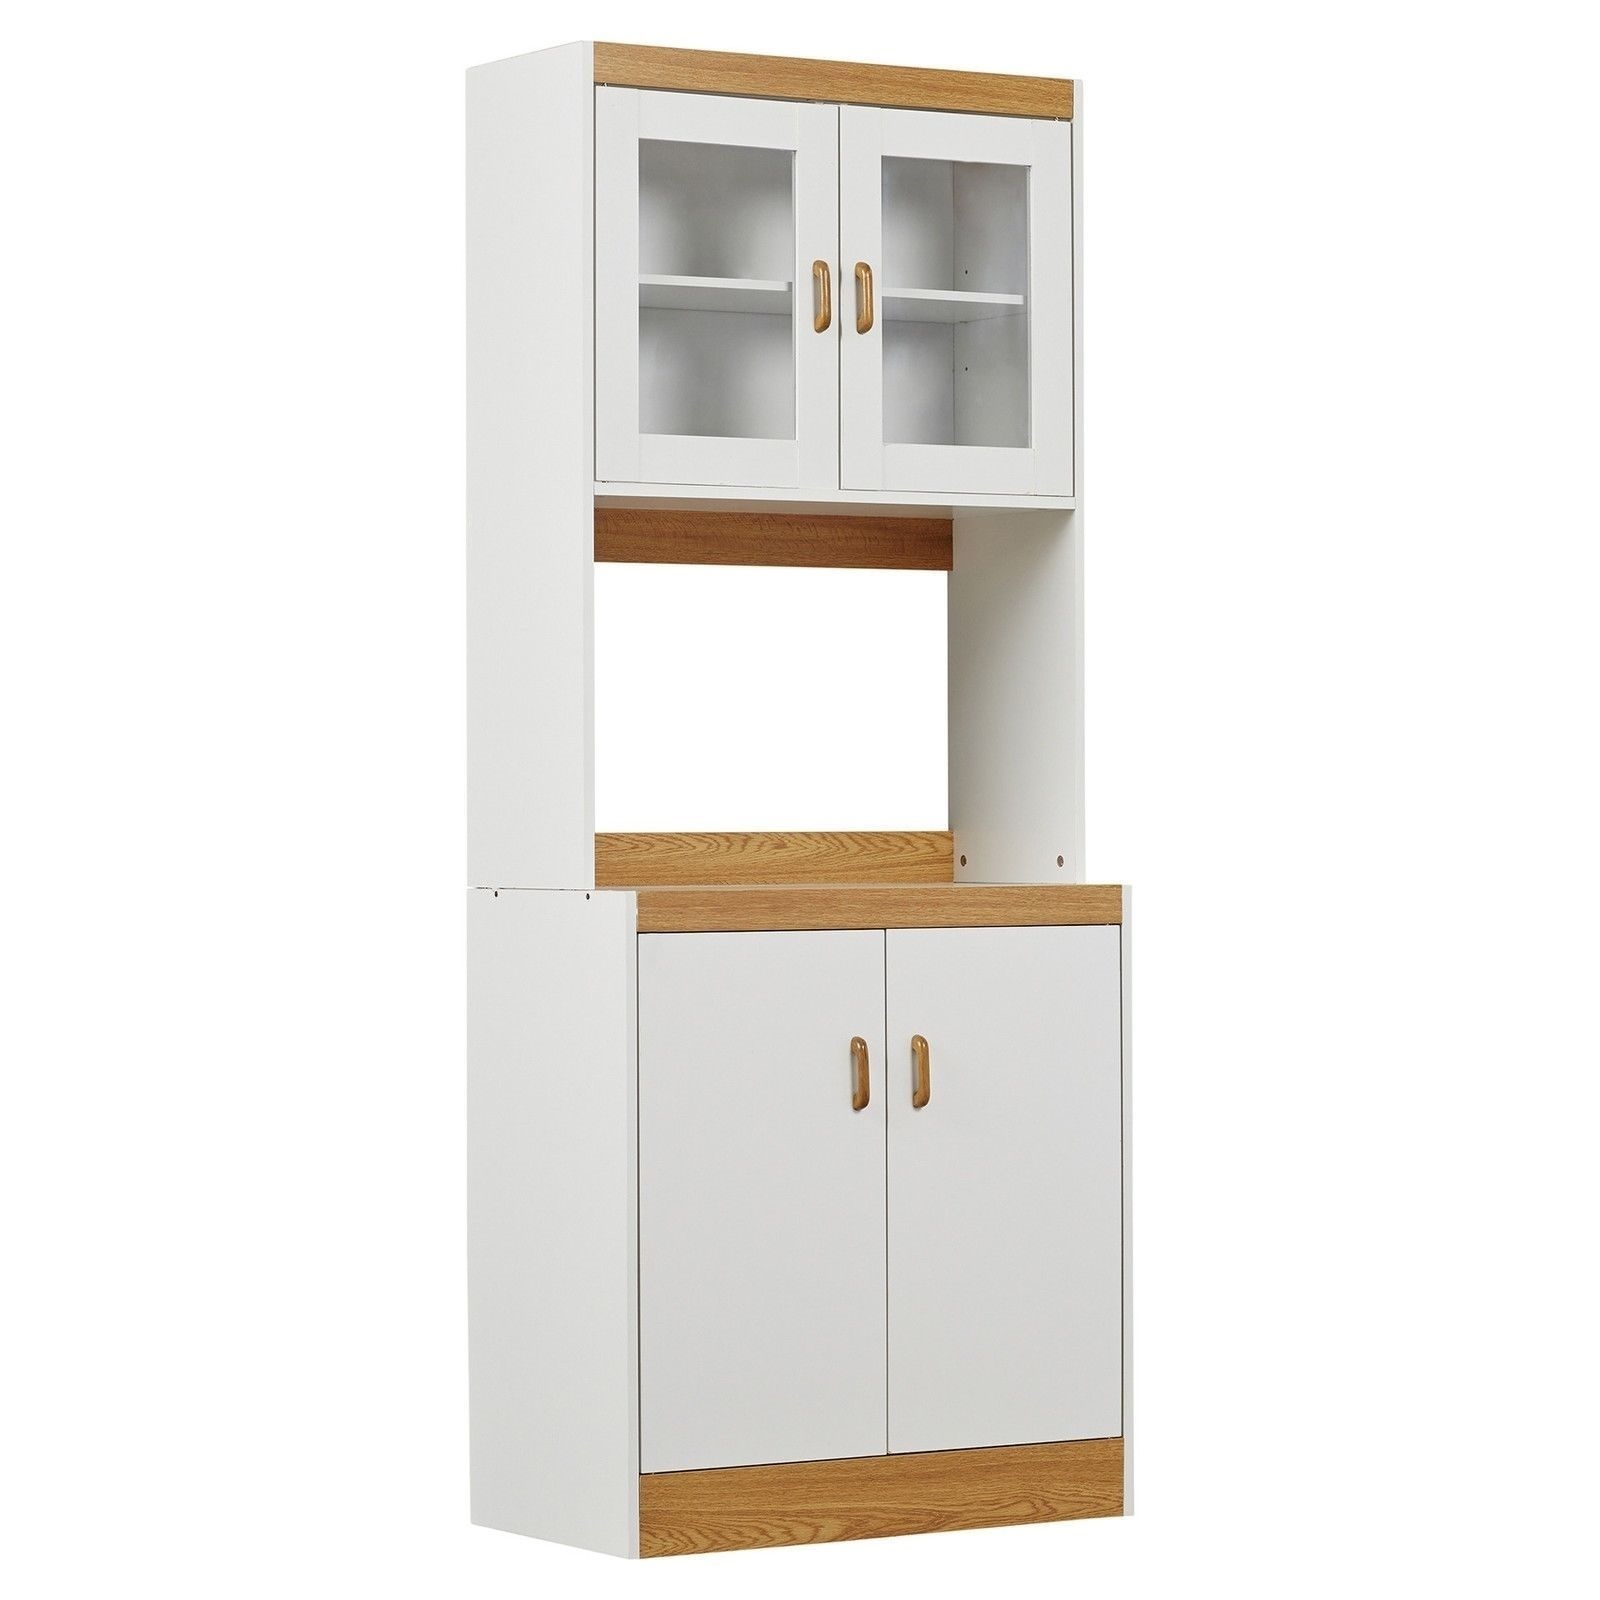 Utility Kitchen Cabinet New Tall Kitchen Microwave Stand White Utility Cabinet